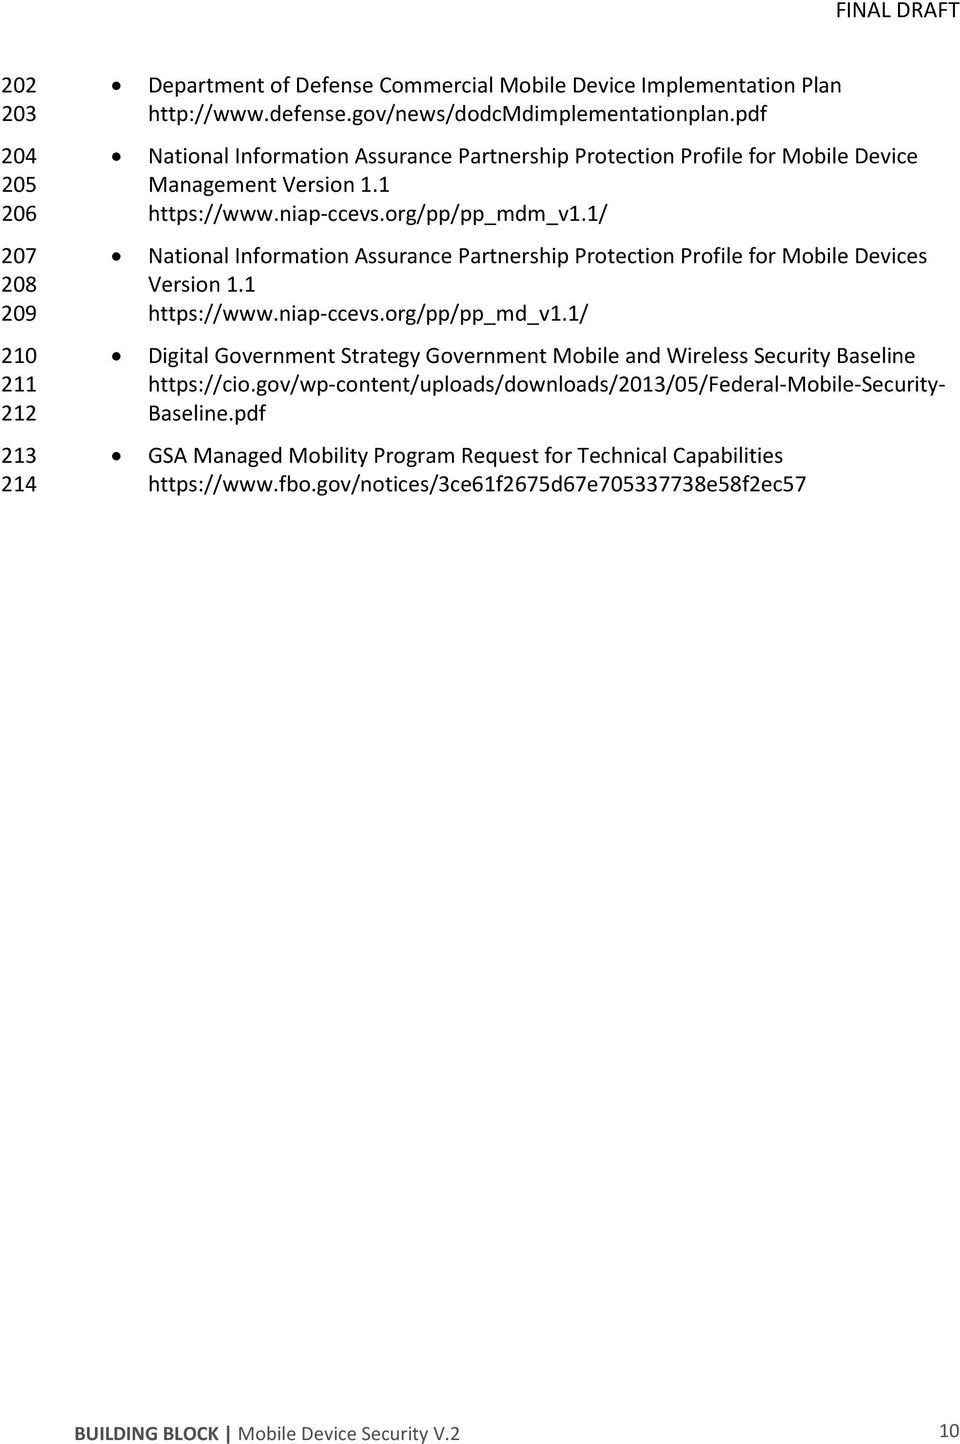 1/ National Information Assurance Partnership Protection Profile for Mobile Devices Version 1.1 https://www.niap-ccevs.org/pp/pp_md_v1.